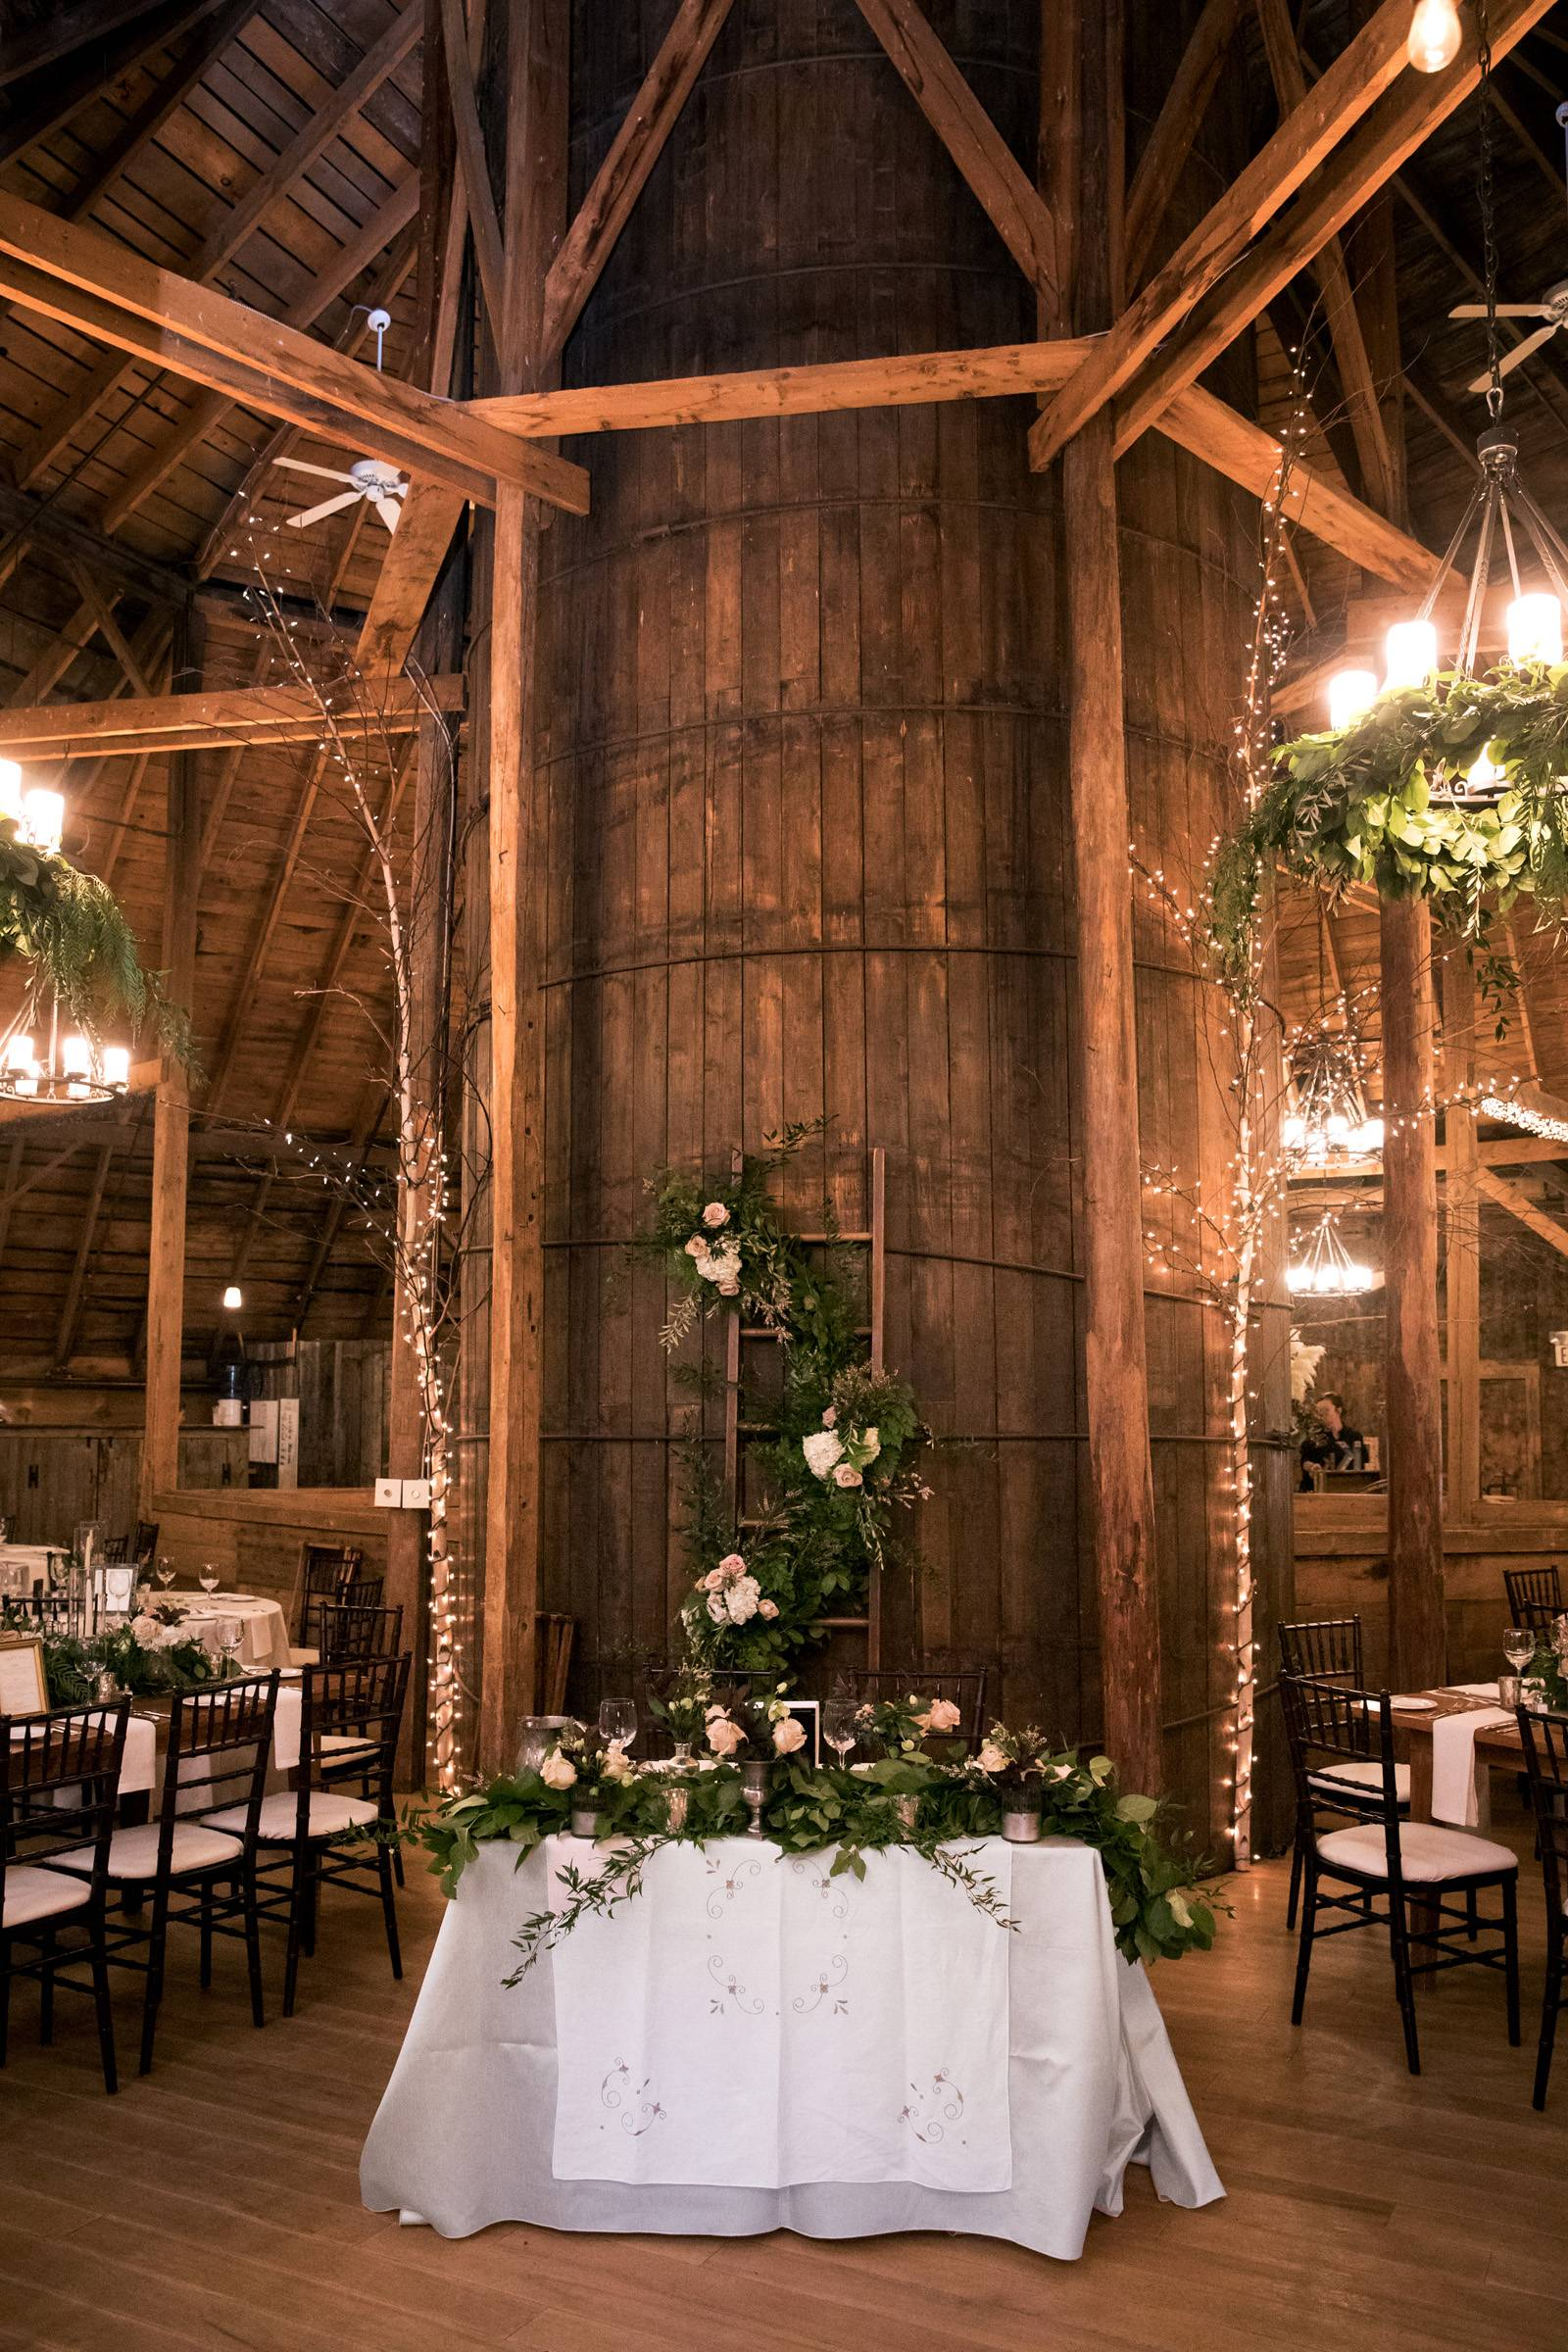 Sweetheart table decor set for romantic fall wedding at the Inn at the Round Barn Farm